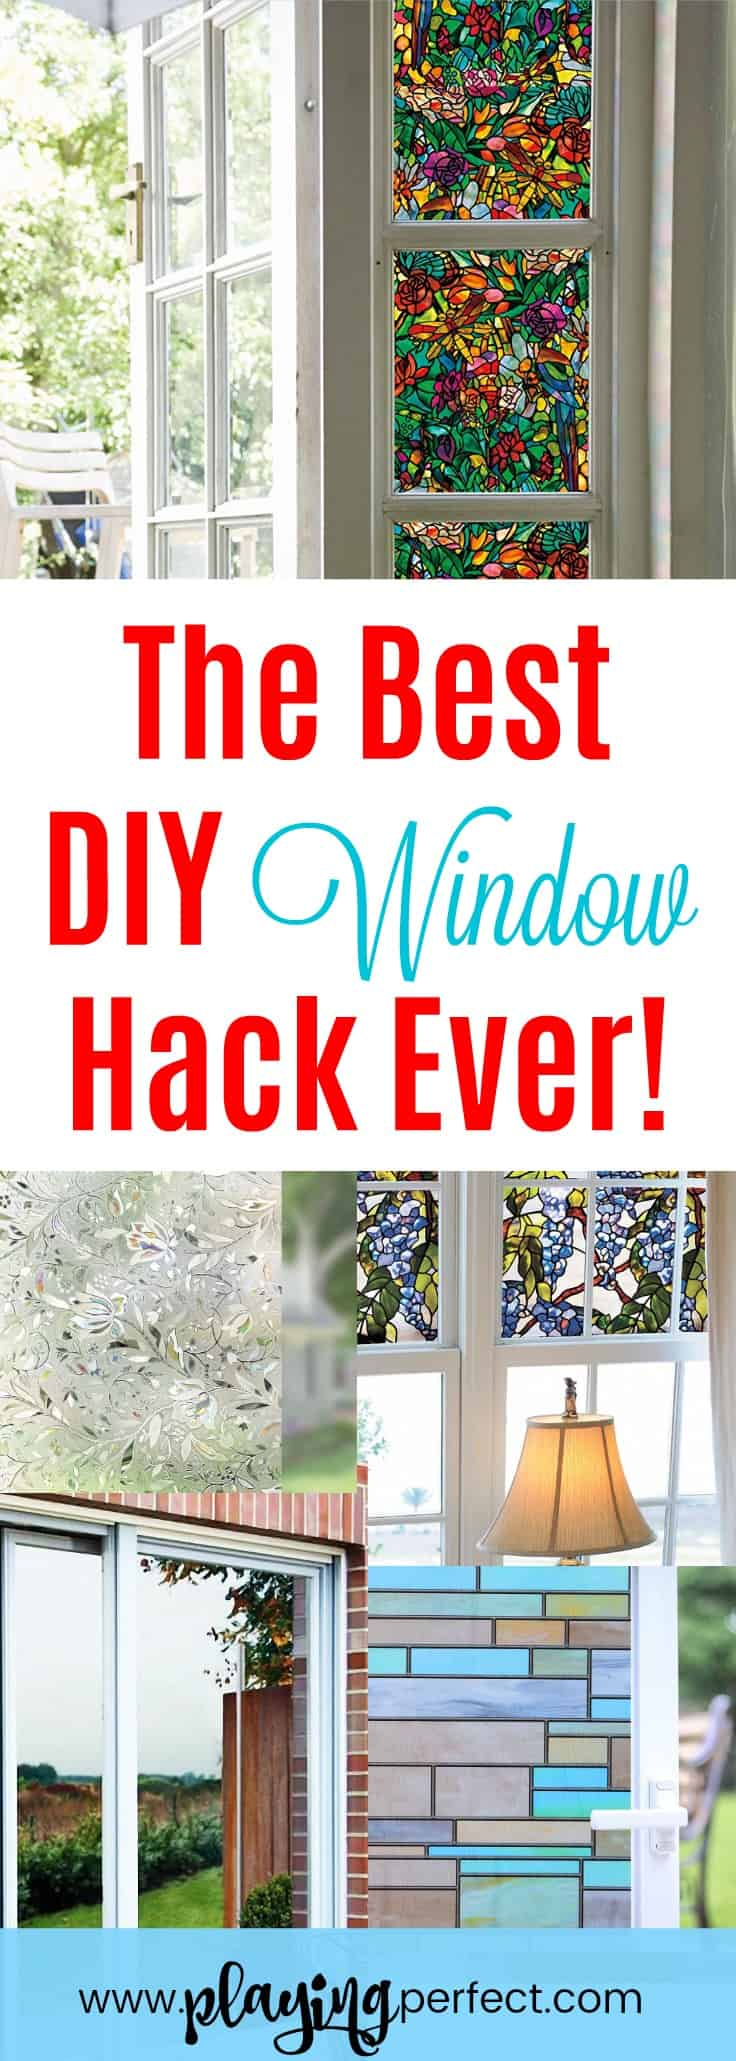 Wow Window Film Is The Best DIY Window Hack Ever - Playing Perfect